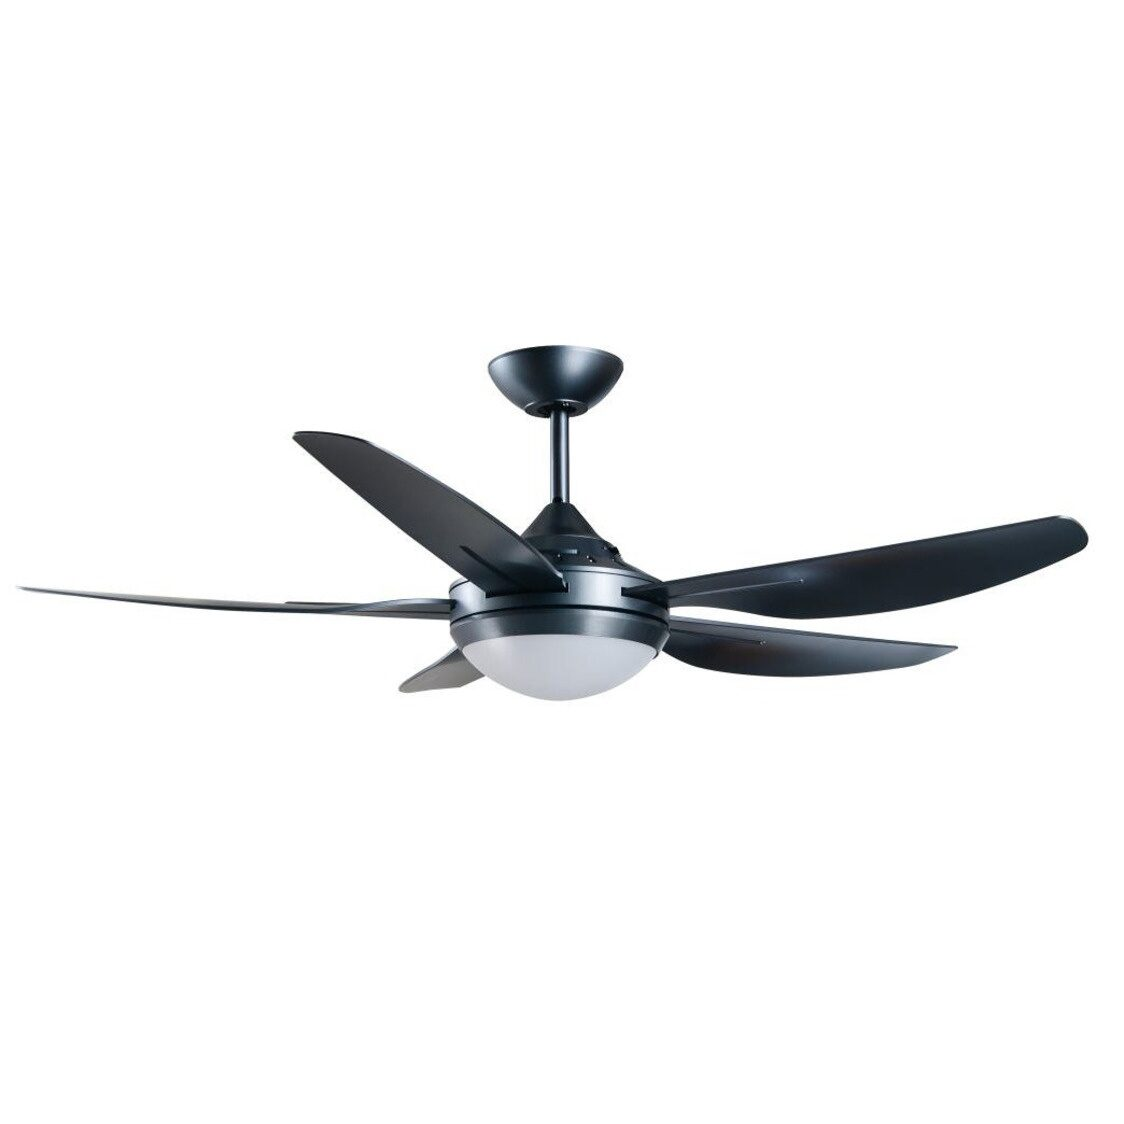 Mandurah Ceiling Fan With Remote And Tri-Color Led Light Kit Titanium 48